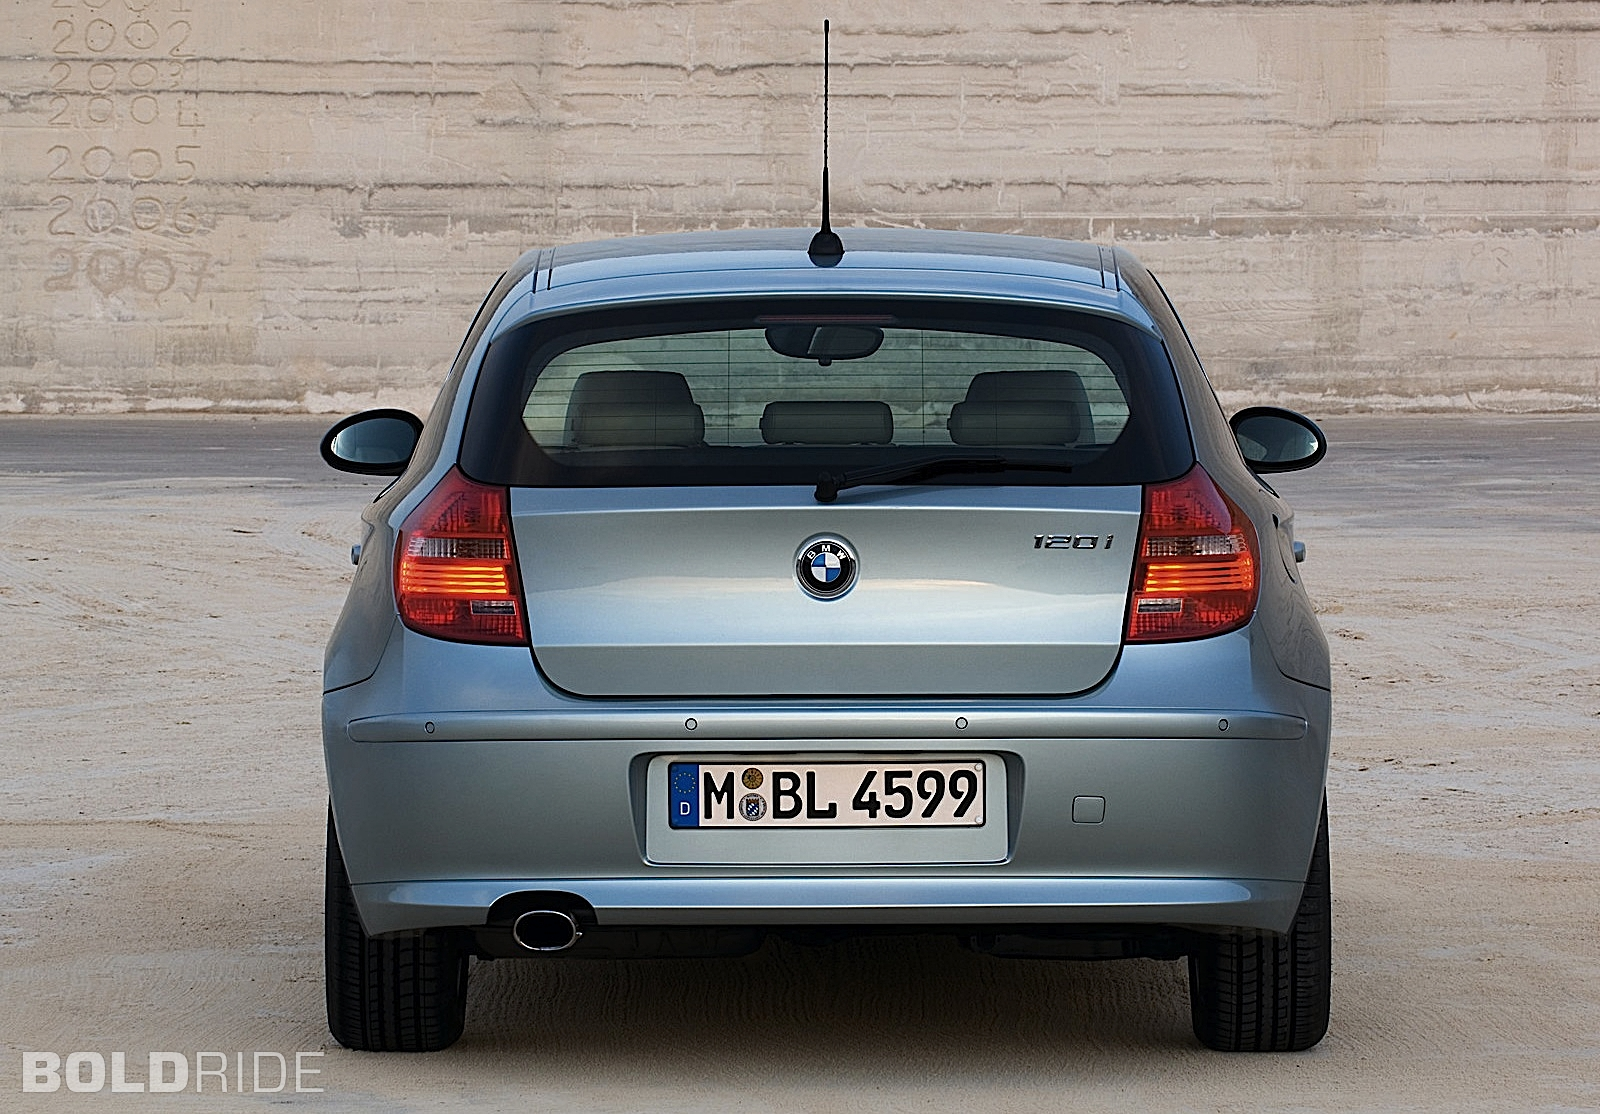 2008 bmw 1 series image 15. Black Bedroom Furniture Sets. Home Design Ideas